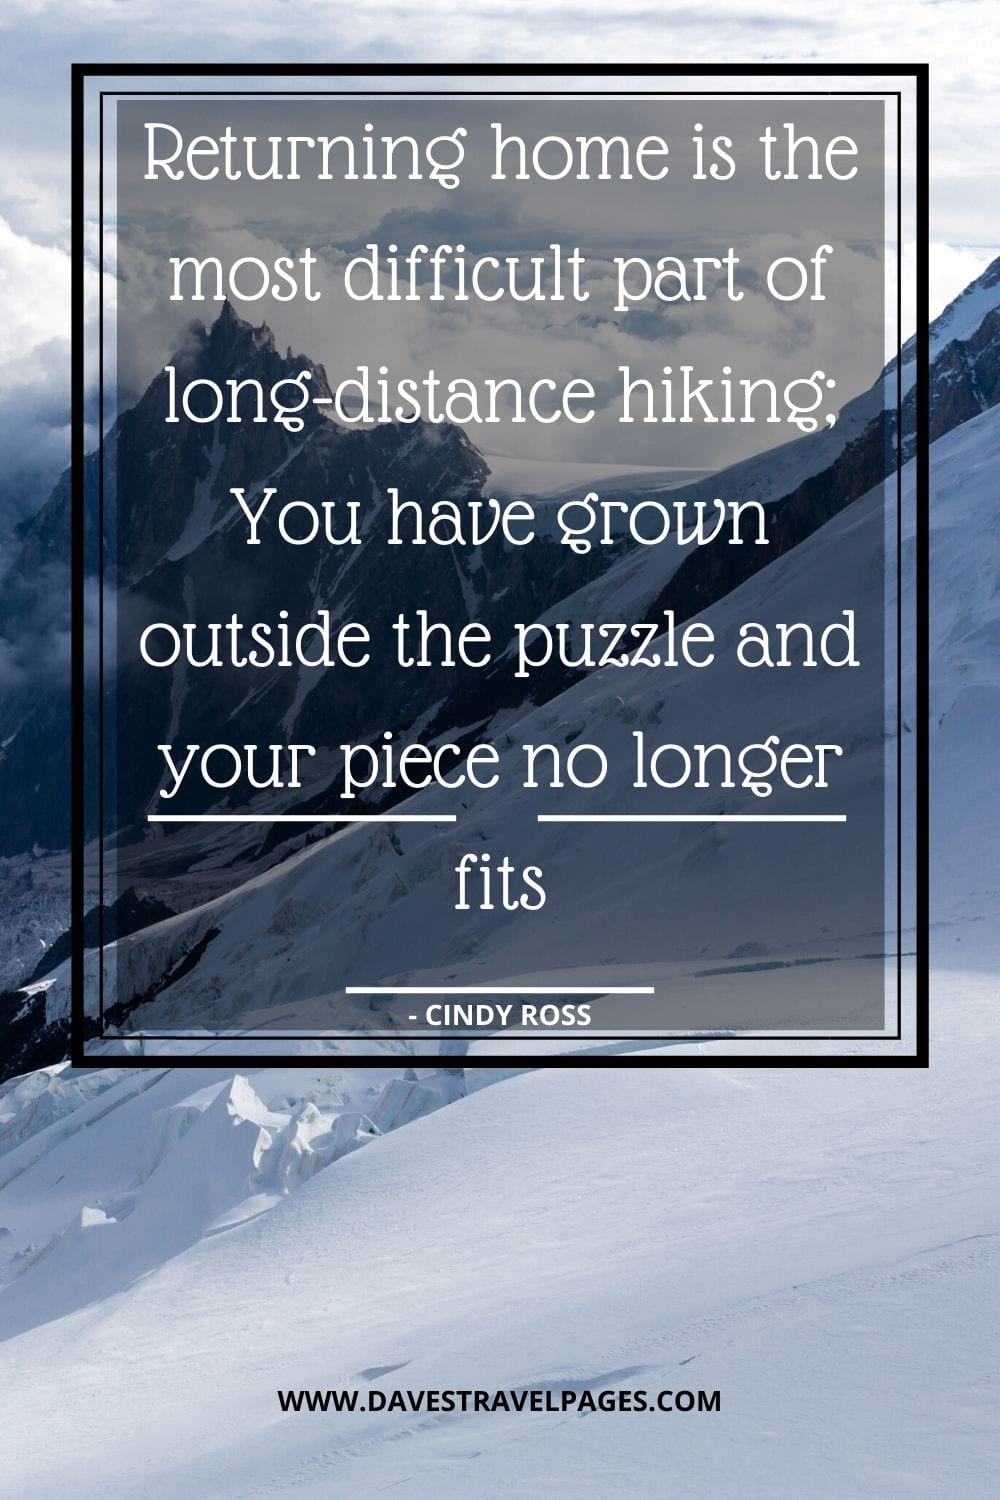 Journey Quotes: Returning home is the most difficult part of long-distance hiking; You have grown outside the puzzle and your piece no longer fits - Cindy Ross